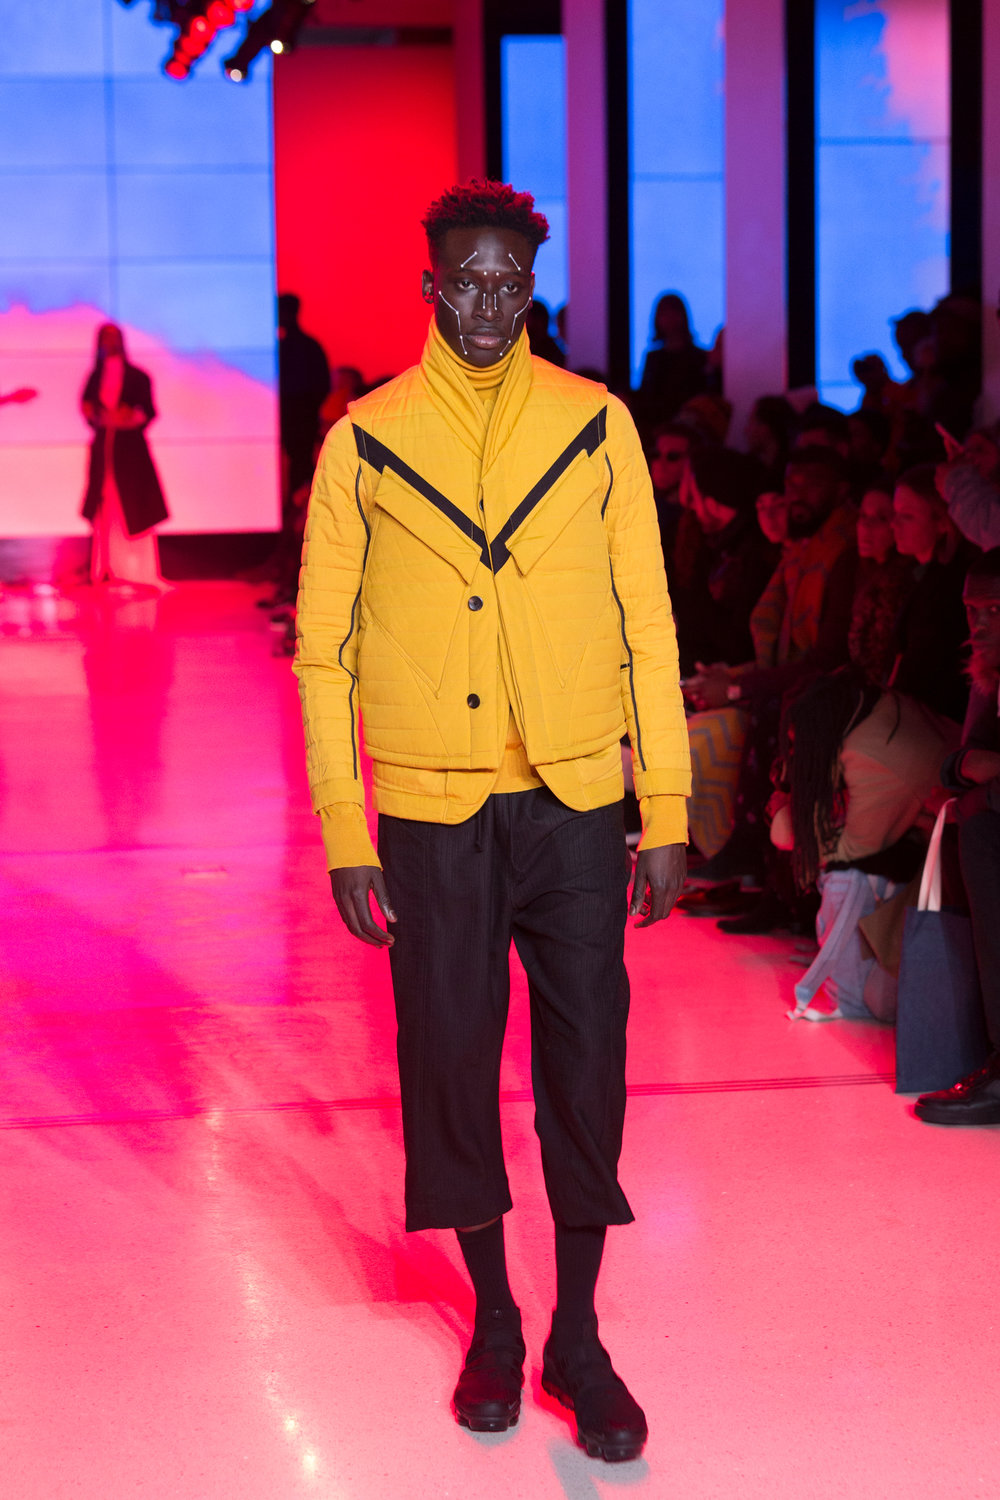 LOOK 28   ARC Oversize Scarf  / Rover Yellow   ARC Parka  / Rover Yellow   ARC Long Sleeve Tee  / Black   ARC Ankara Pant  / Black Wool   Nike Air VaporMax Utility